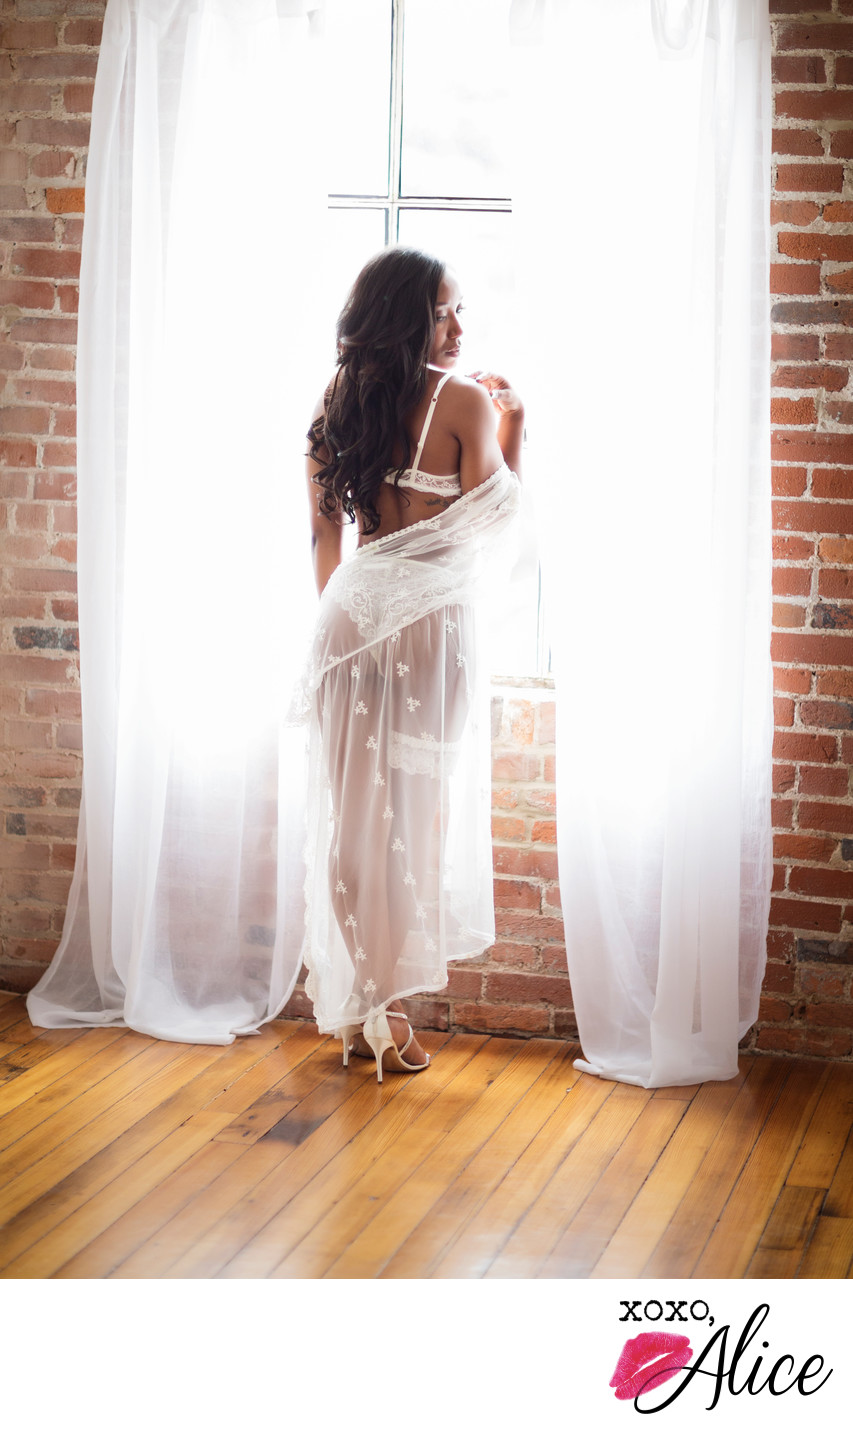 Boudoir photography black women romantic pose in window